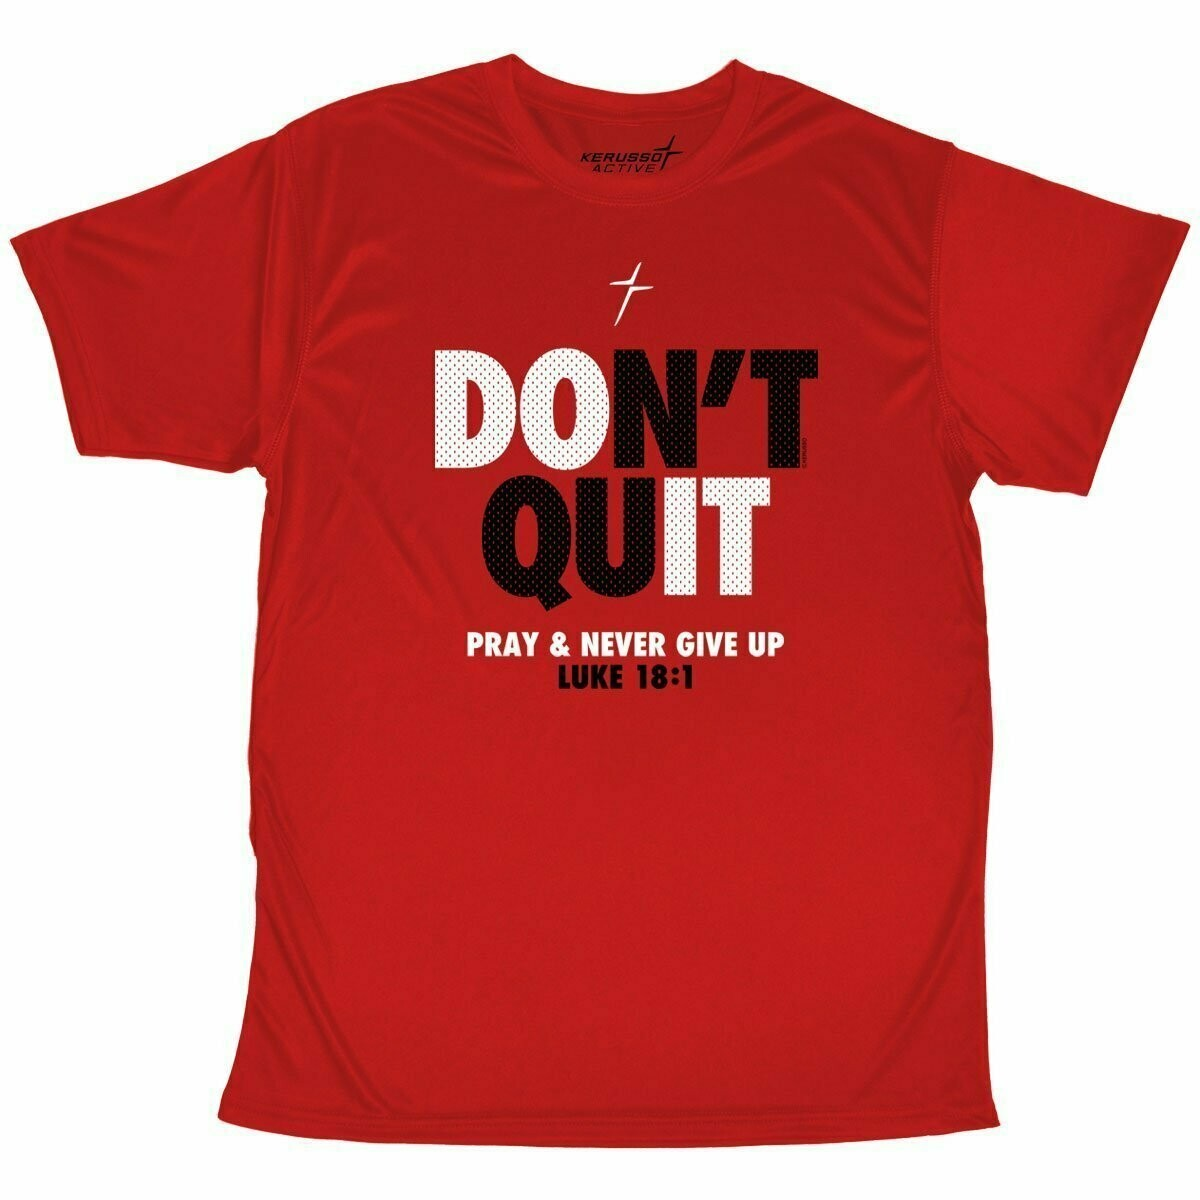 Adult Performance Wear T-Shirt Don't Quit Never Give Up Red - FREE Shipping